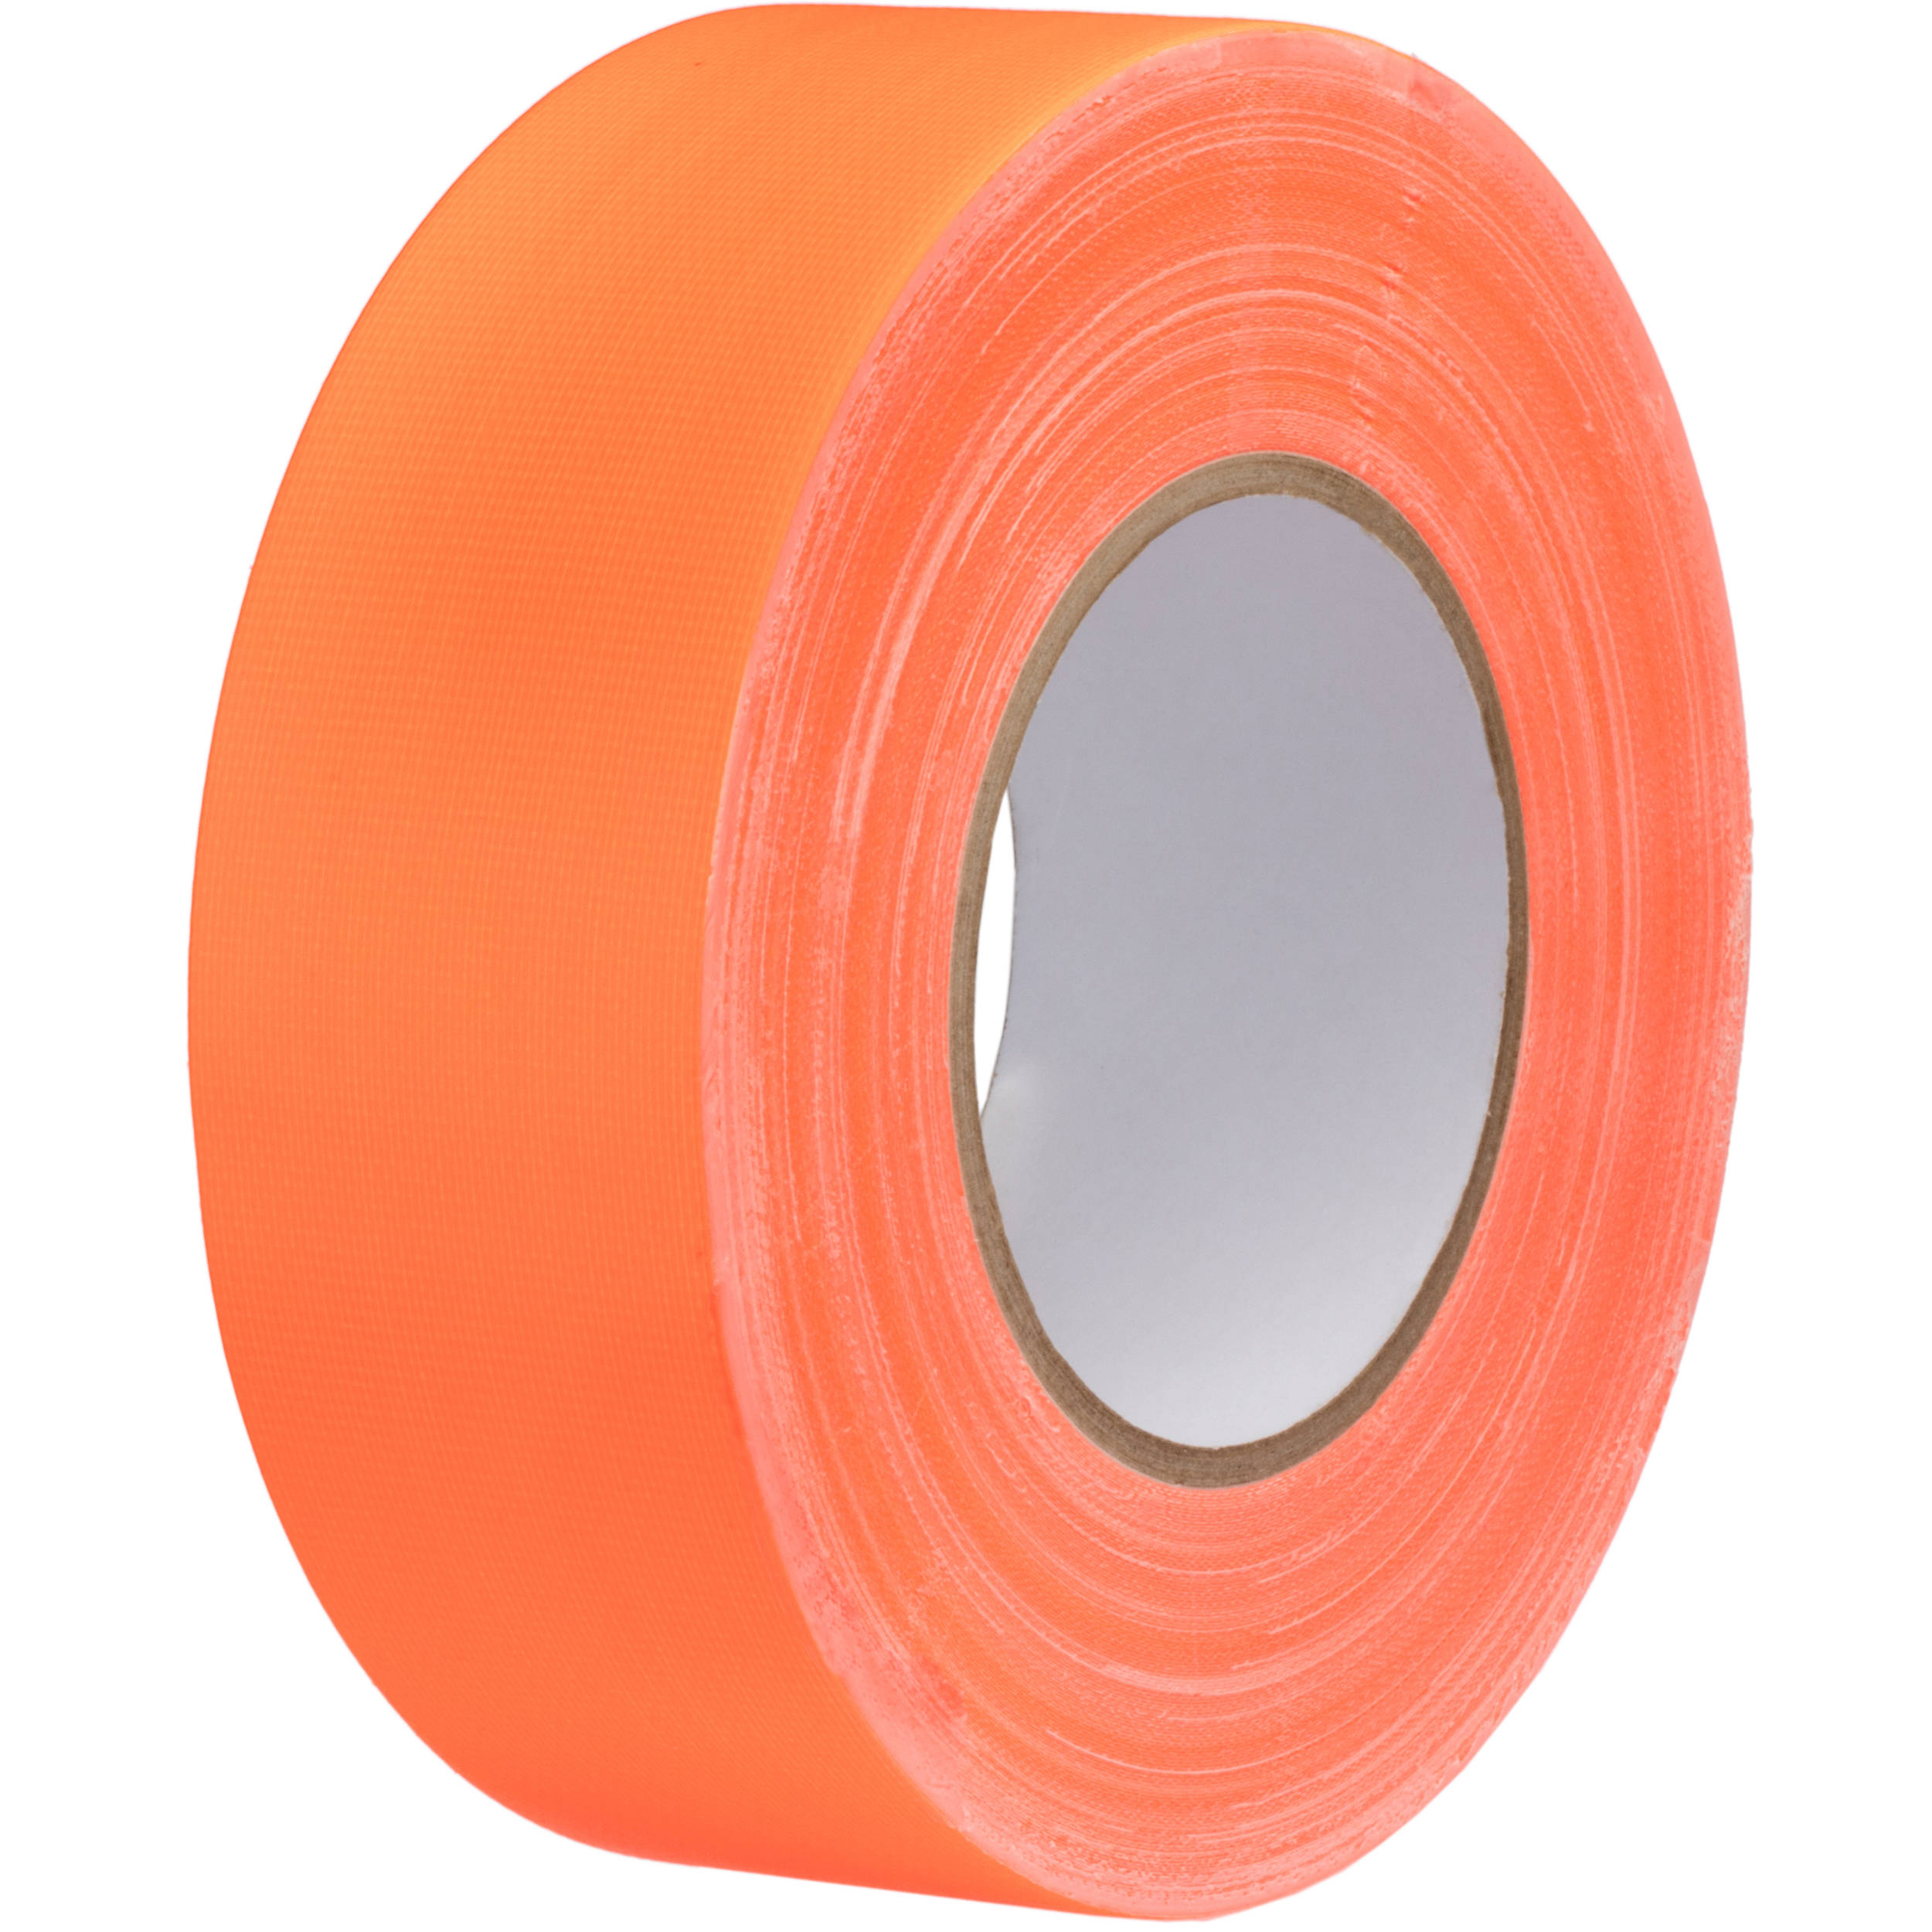 5890be5193a9 Impact Gaffer Tape (Neon Orange, 2